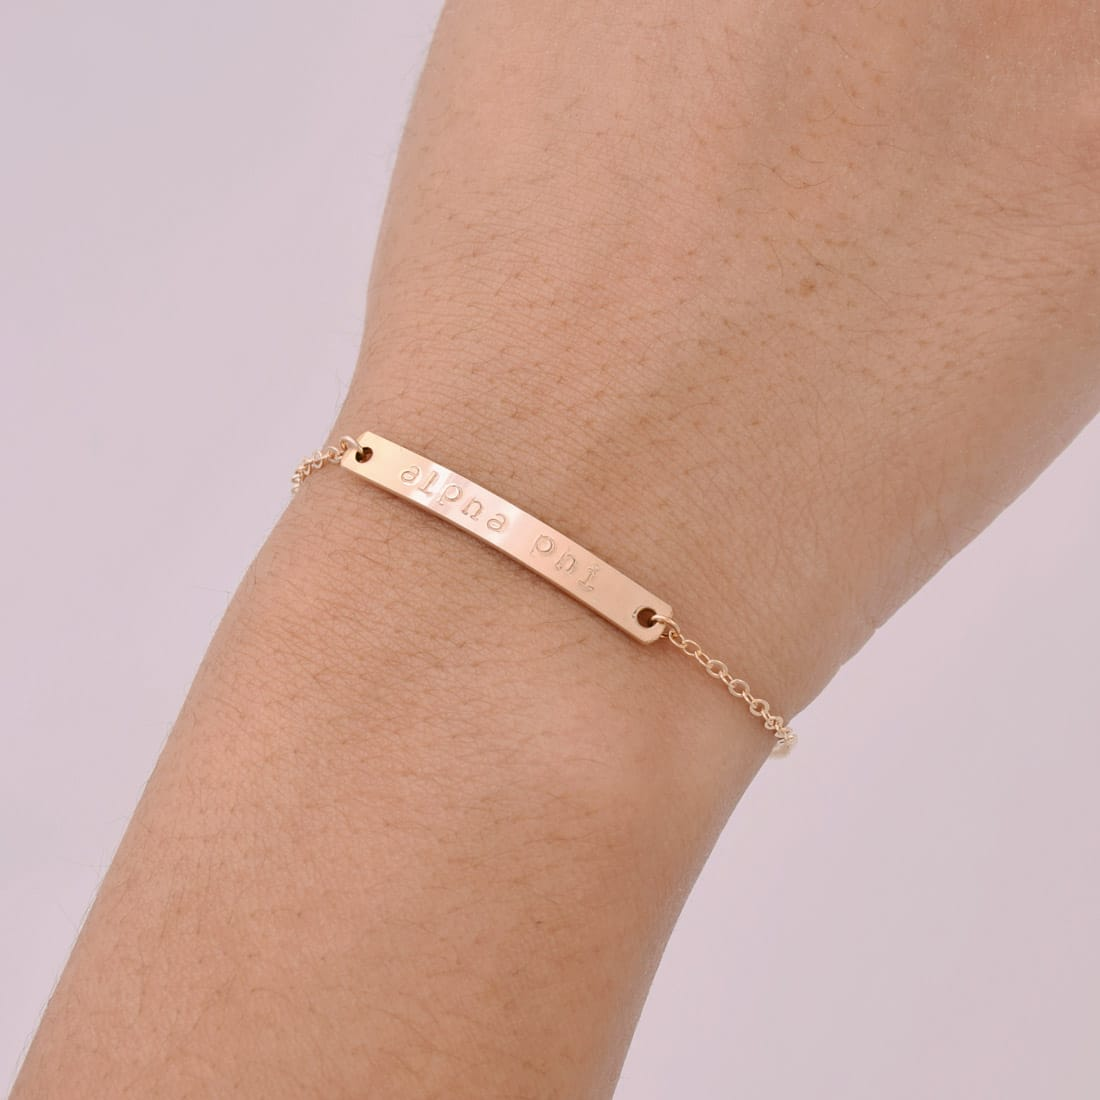 coordinates products bar name bracelet rose of silver copy engraved custom gold personalized